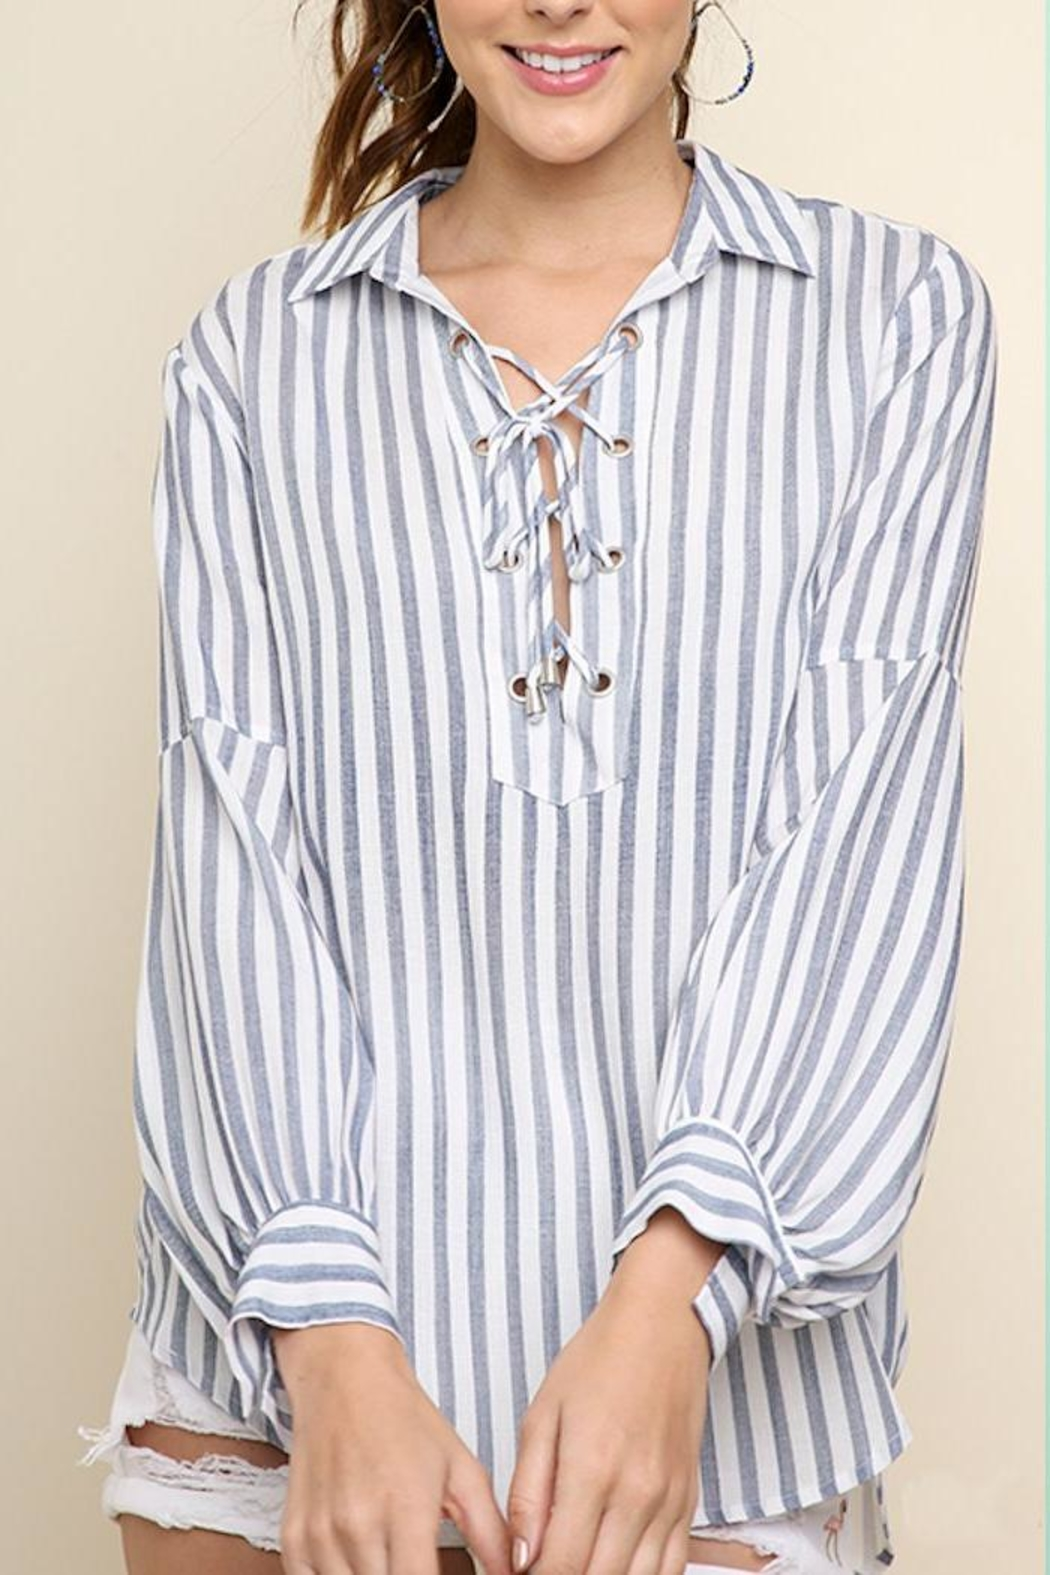 Umgee USA Striped Drawstring Top - Main Image